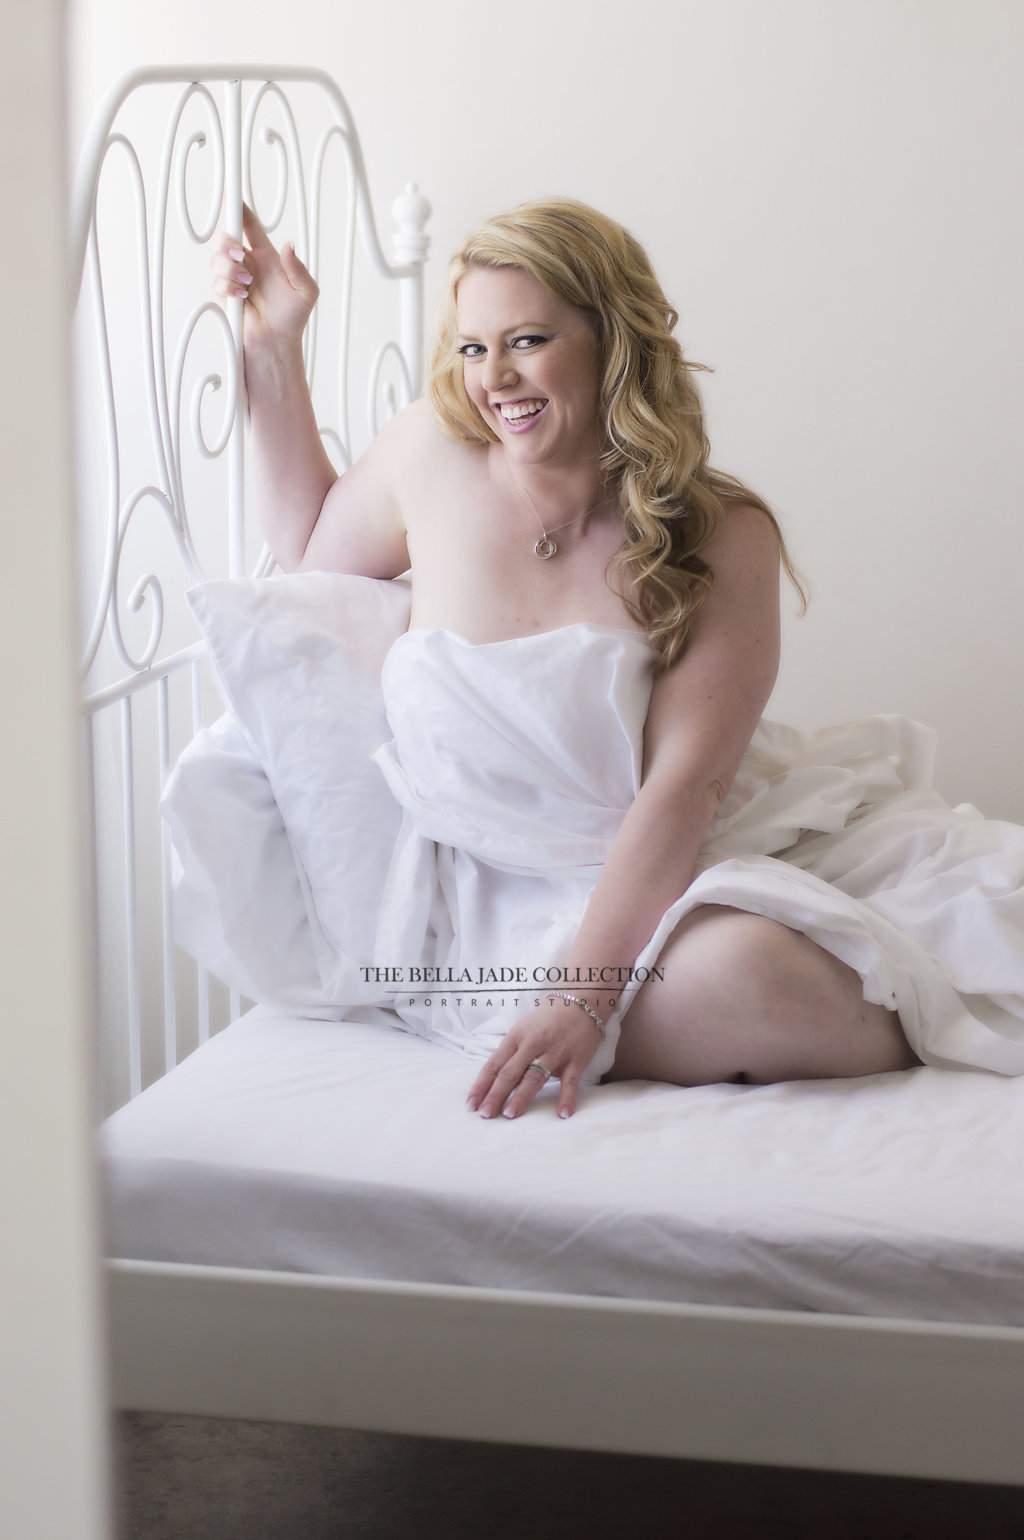 phoenix-intimate-photographer-white-sheet-boudoir-photography-the-bella-jade-collection-006